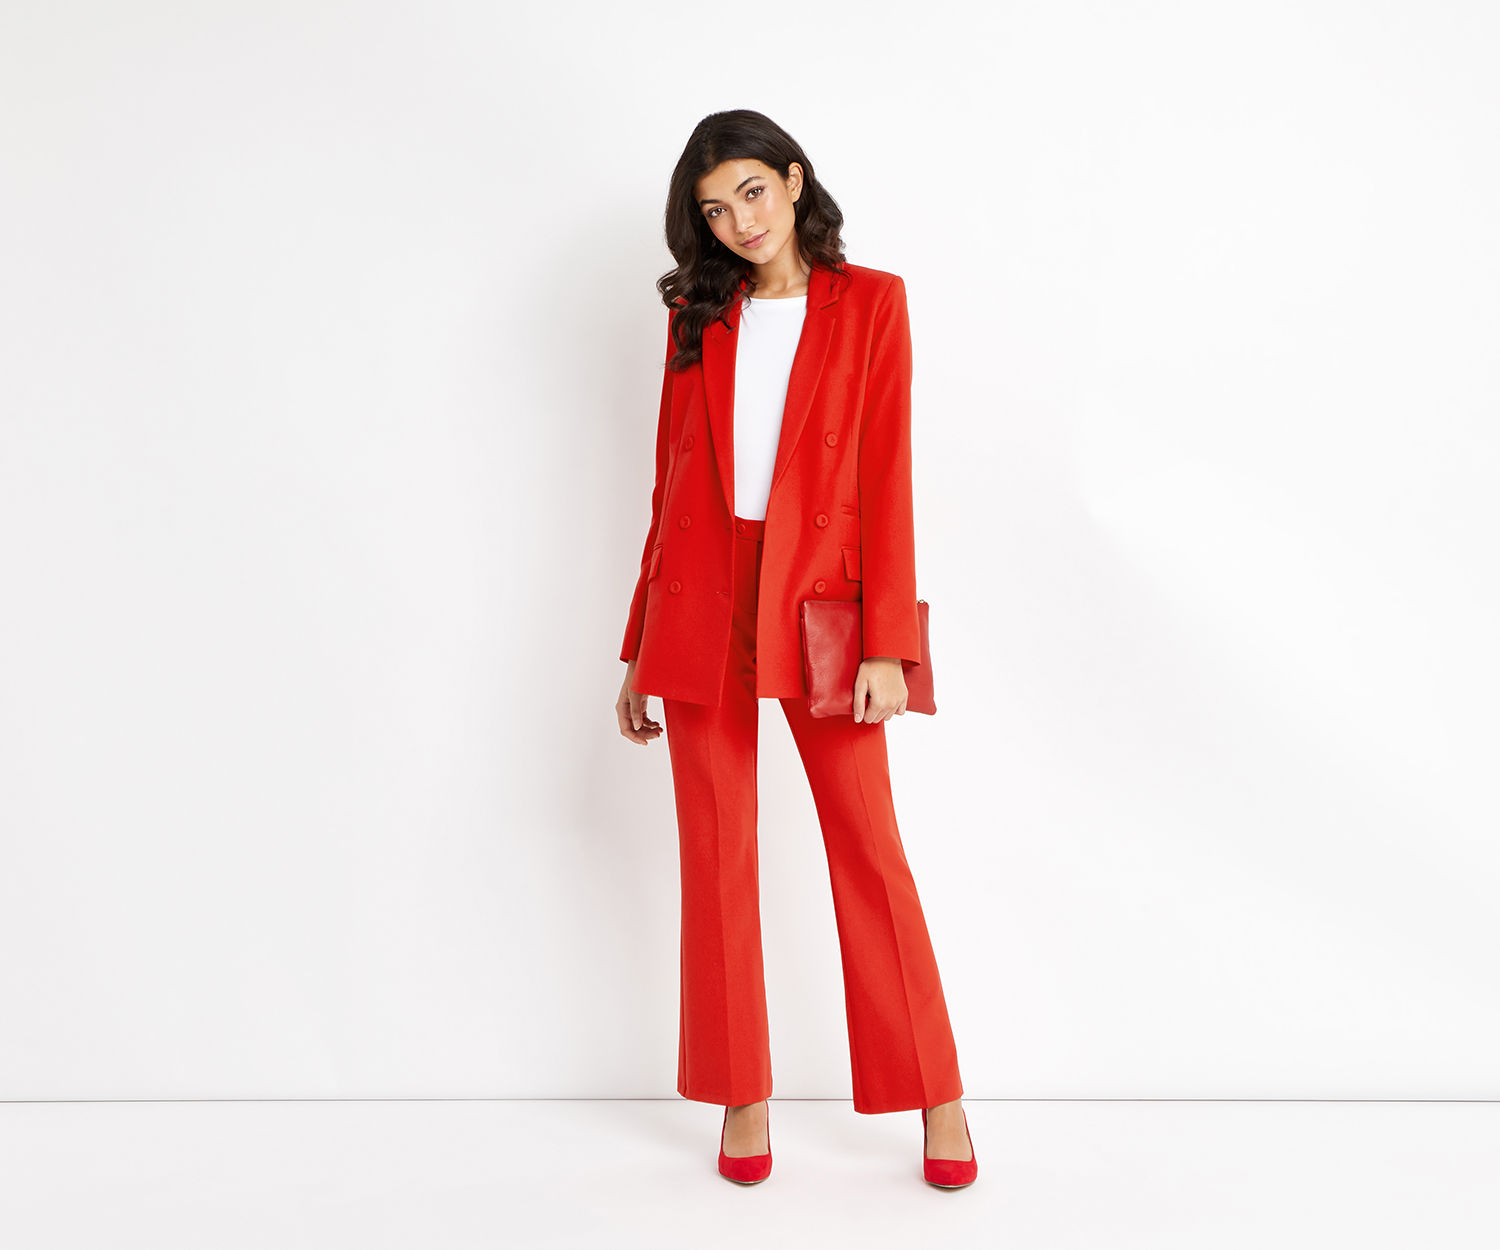 Oasis Ultimate Red Suit Jacket, £65, and Trousers, £40